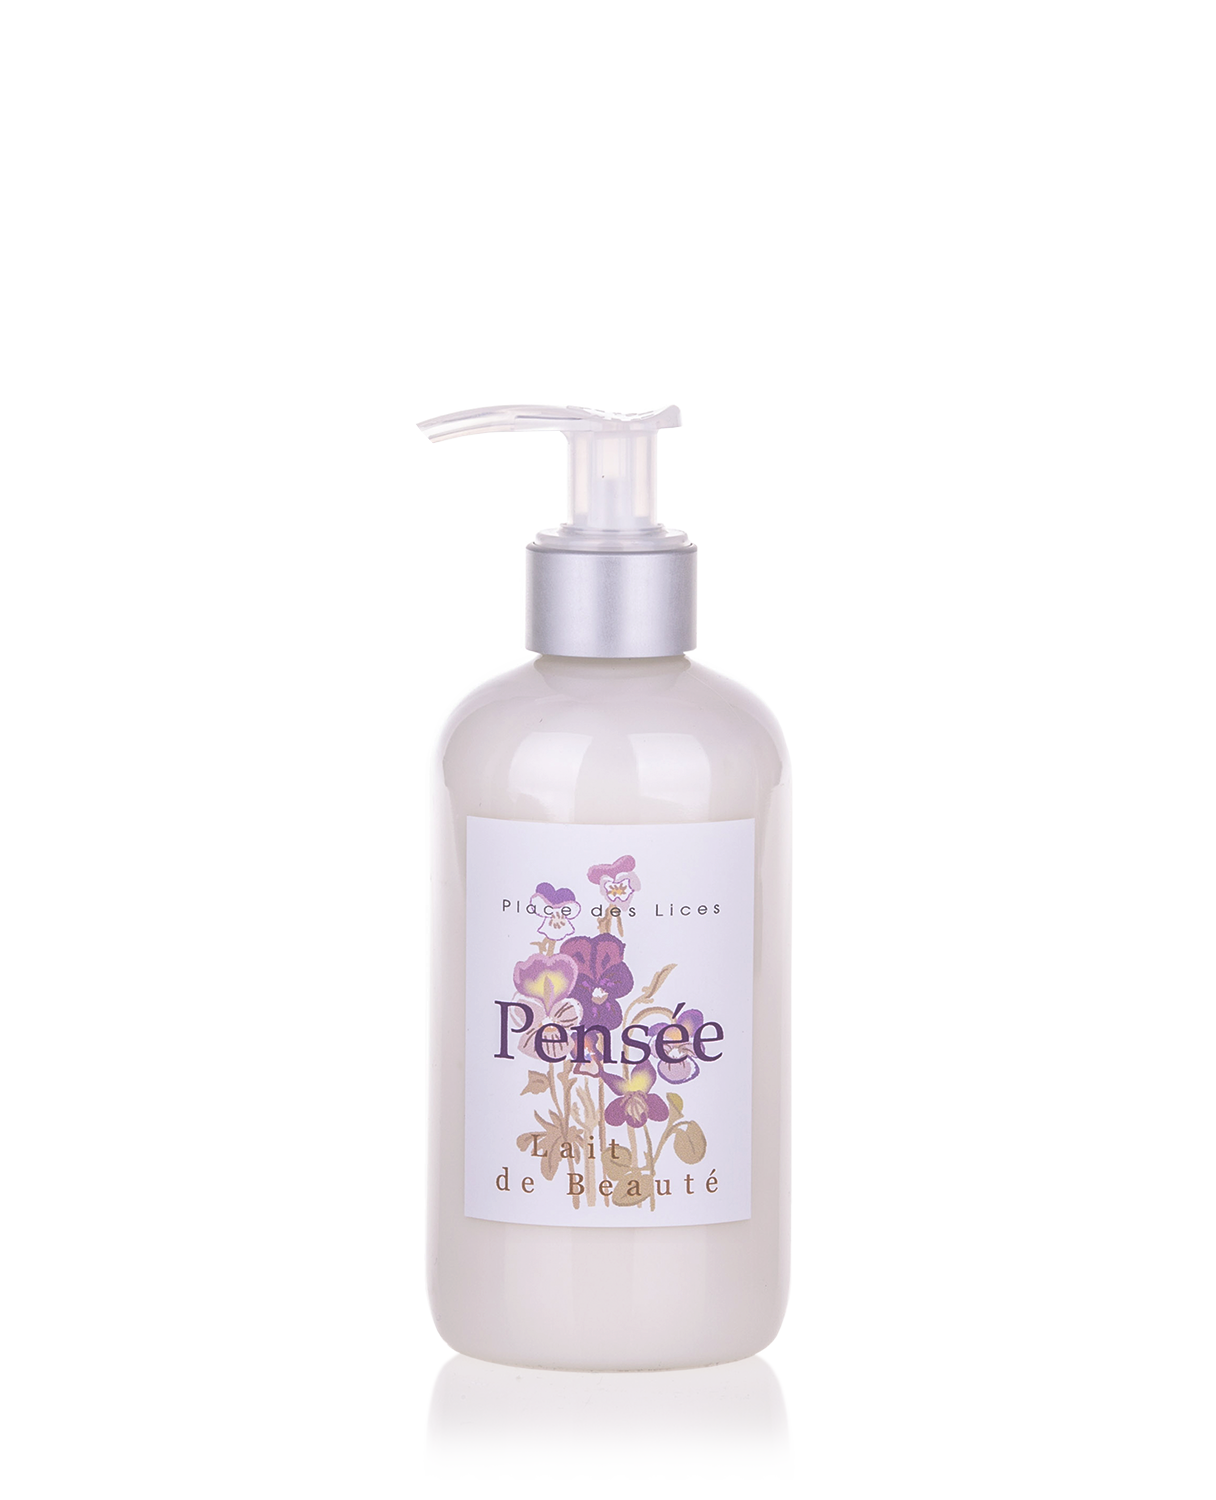 Pensee body lotion Place des Lices